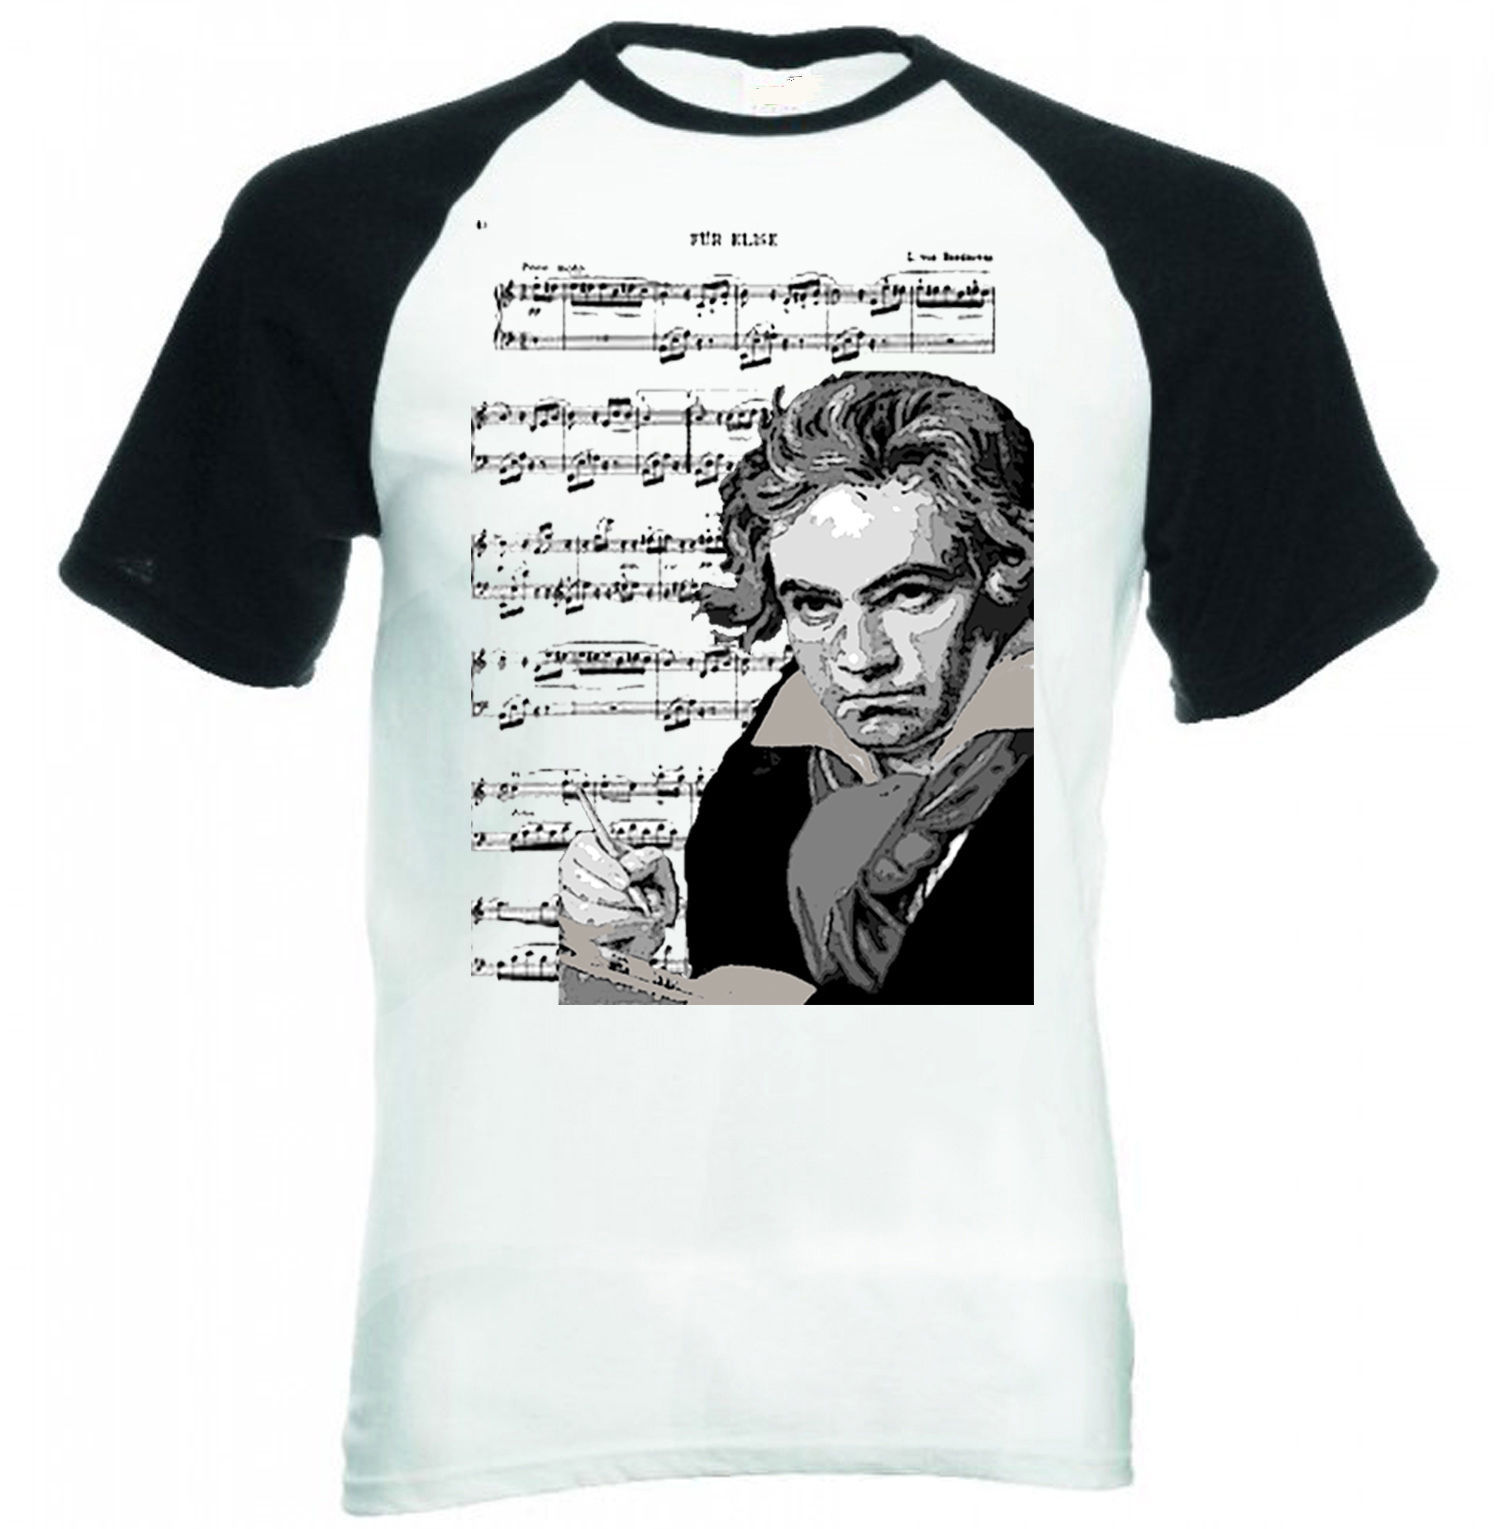 Primary image for LUDVIG VAN BEETHOVEN 2. - BLACK SLEEVED BASEBALL TSHIRT S-M-L-XL-XXL